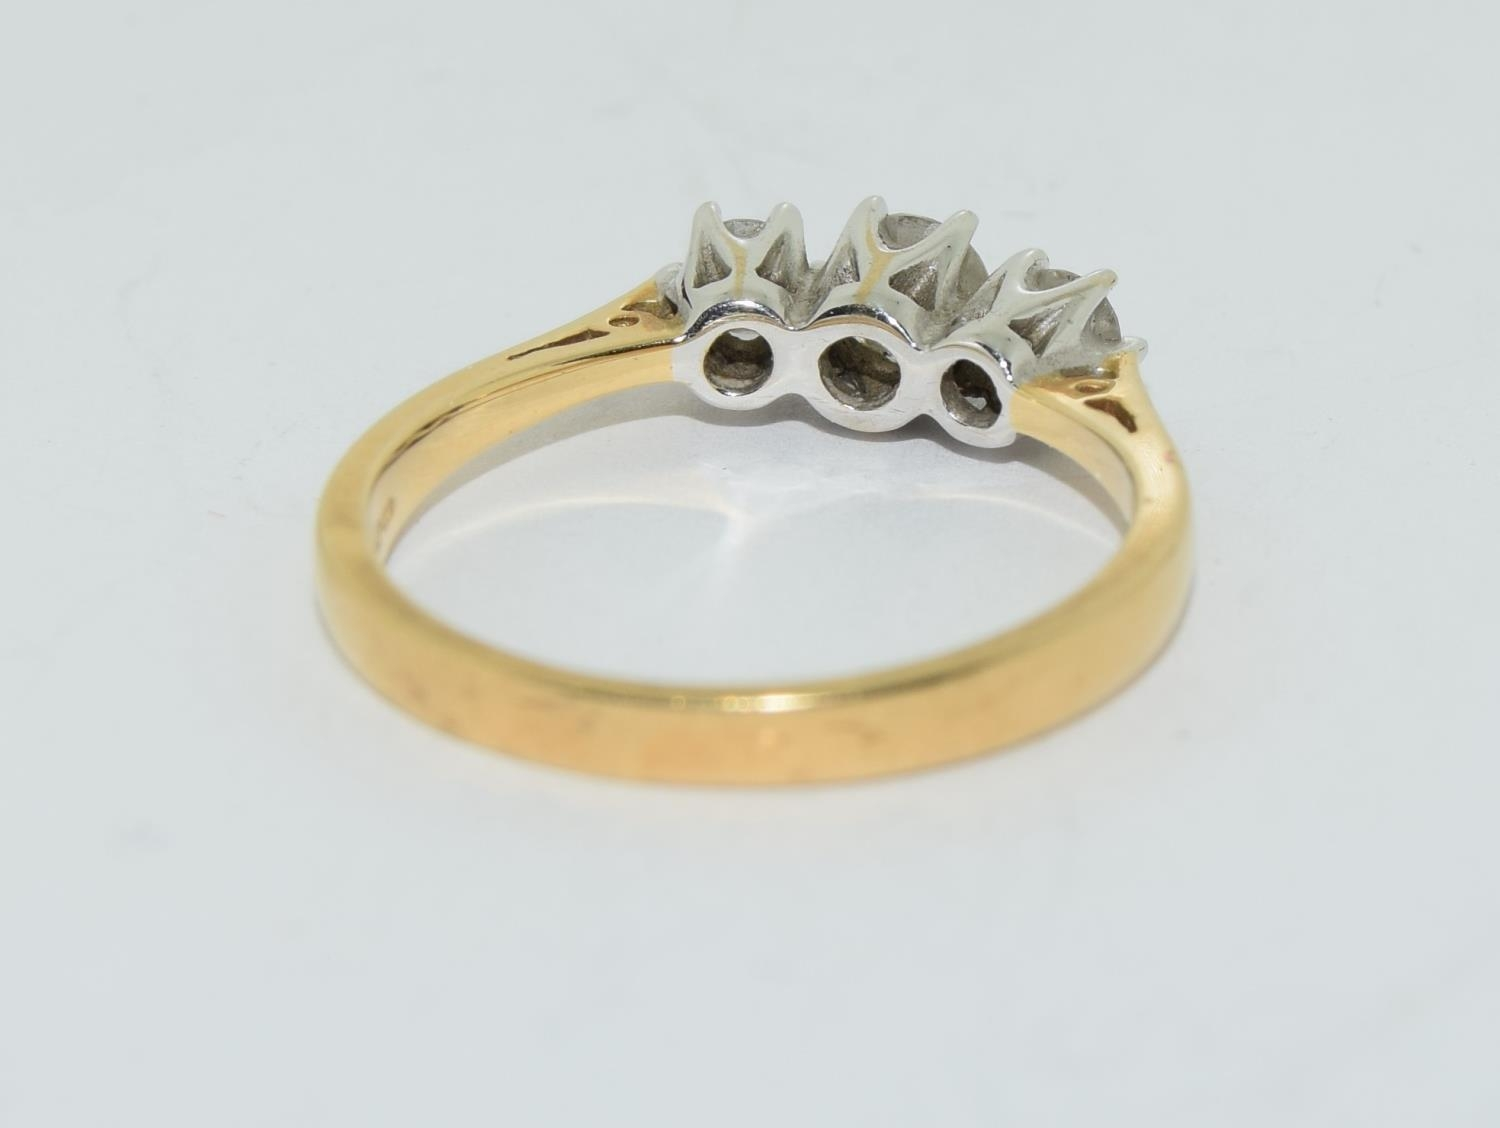 Diamond 3 stone aprox 0.50 points 18ct gold ring size O. - Image 3 of 5